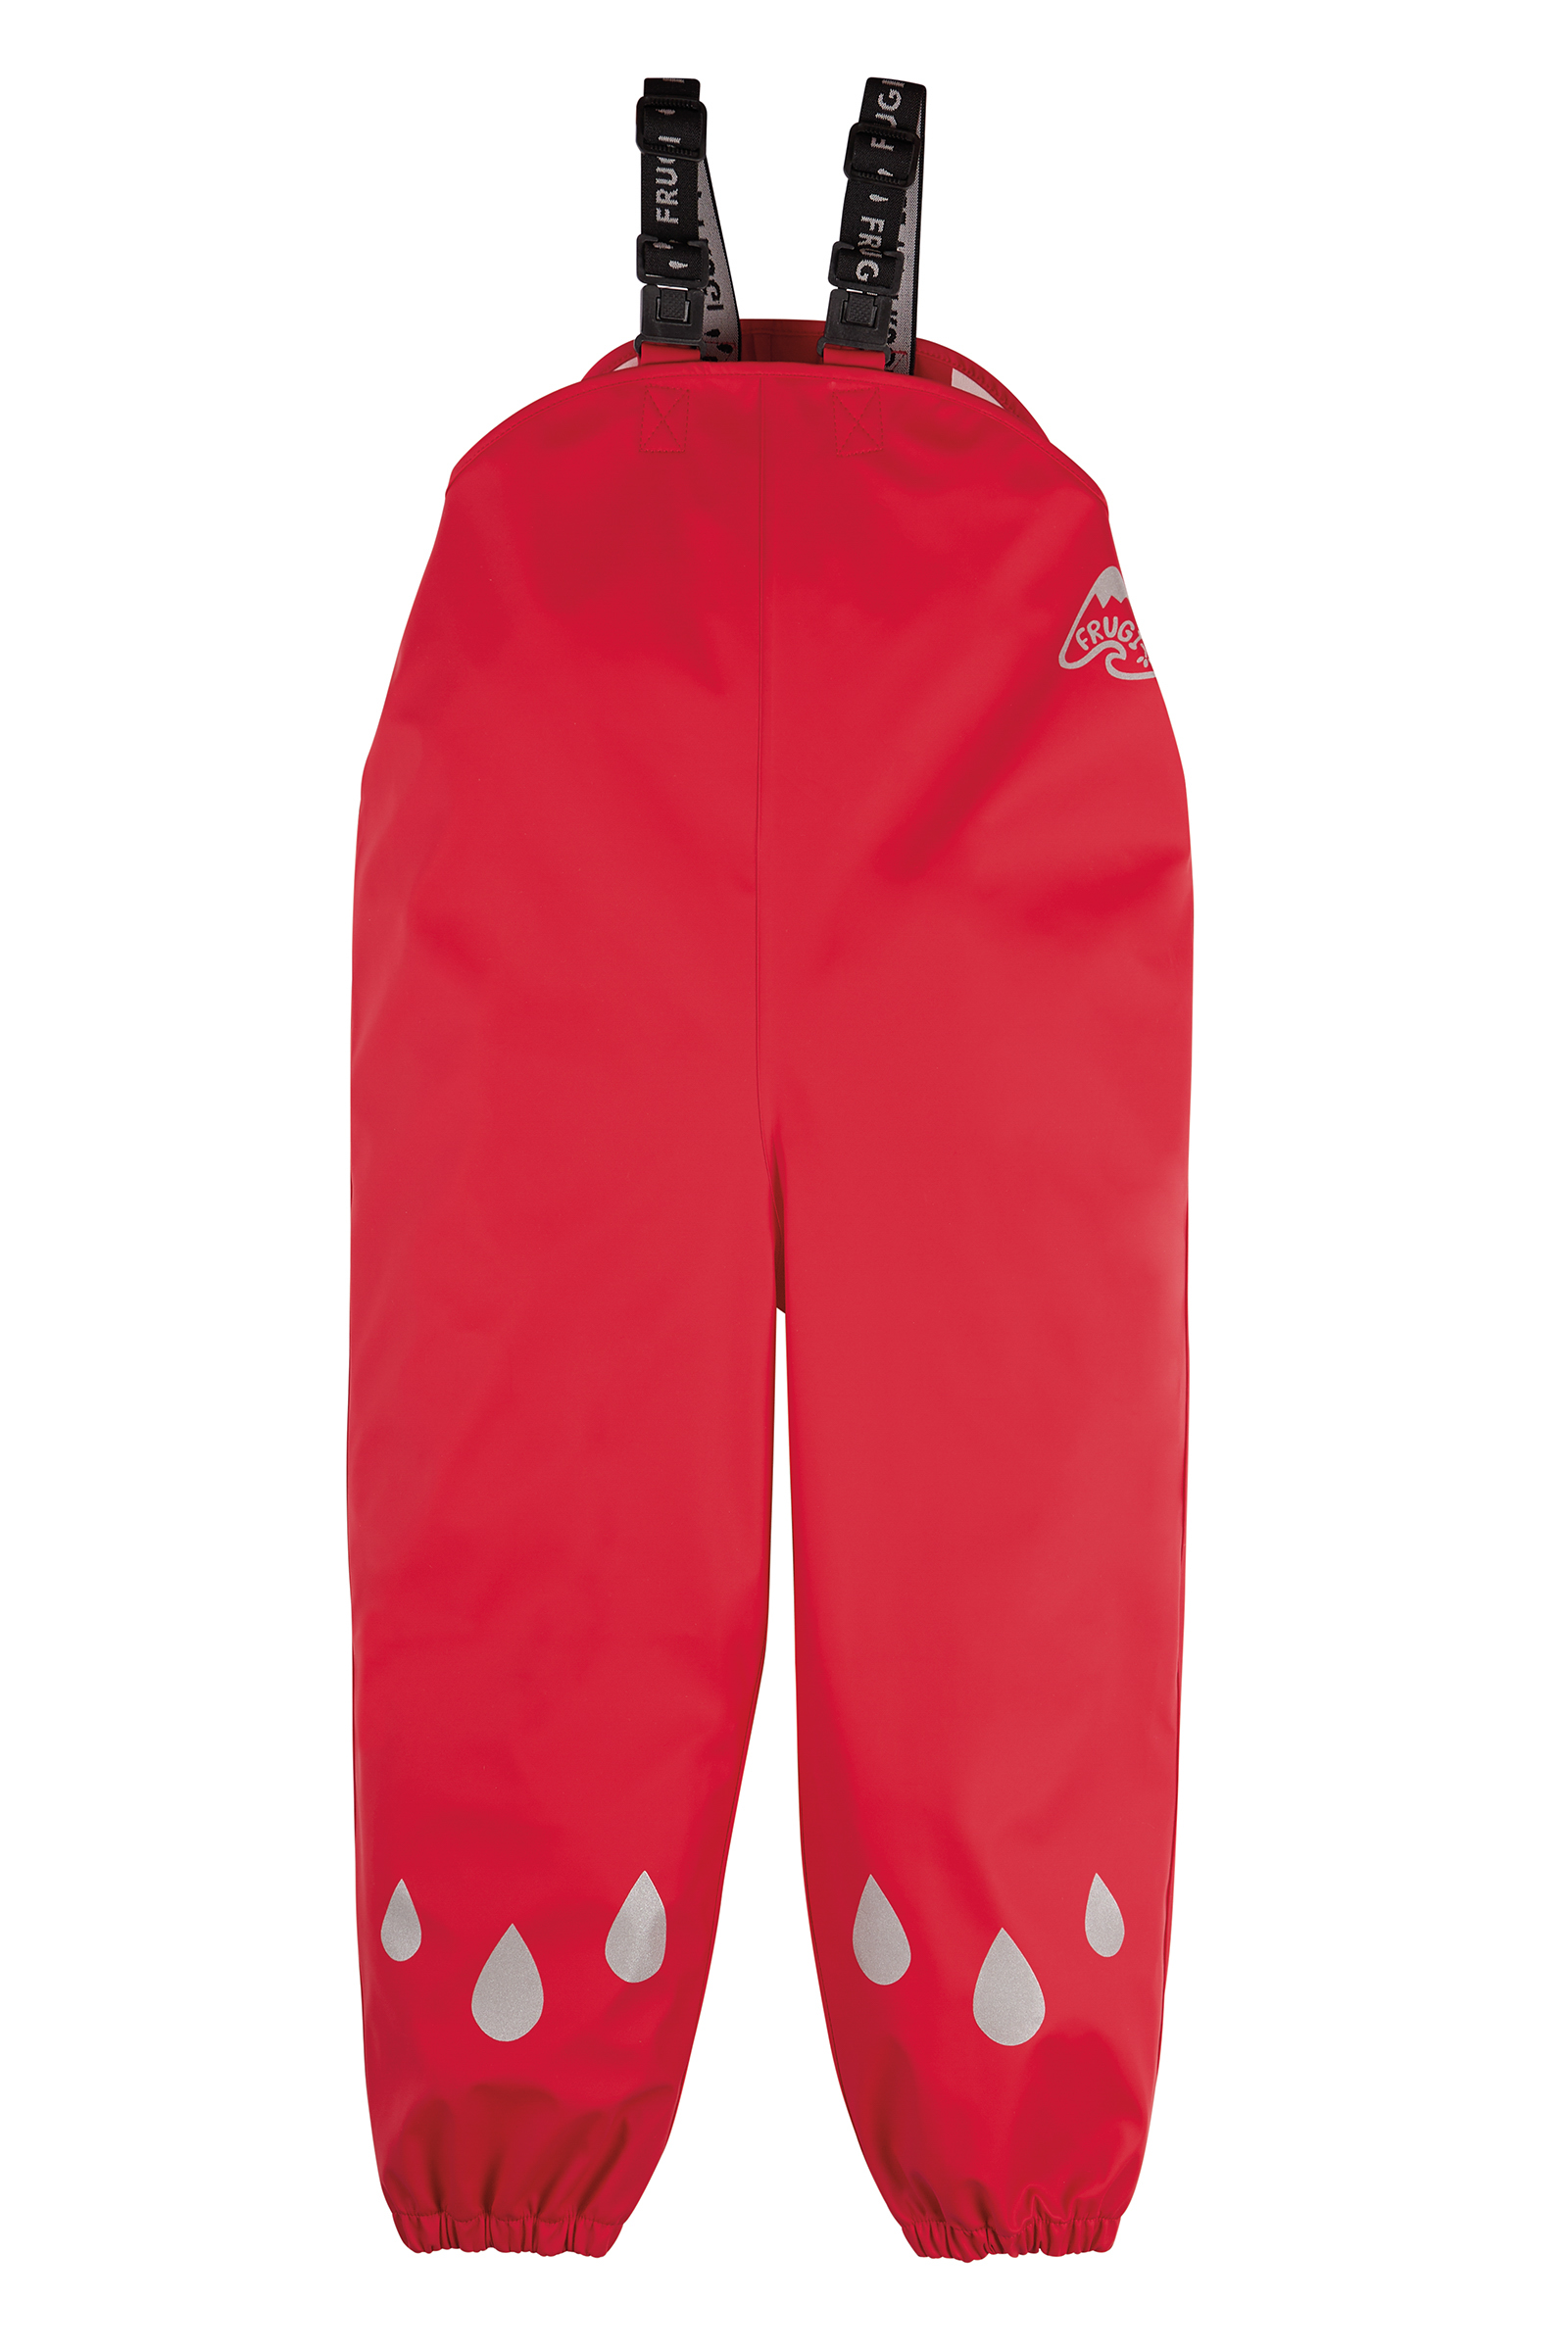 Frugi - Puddle Buster Trousers, True Red